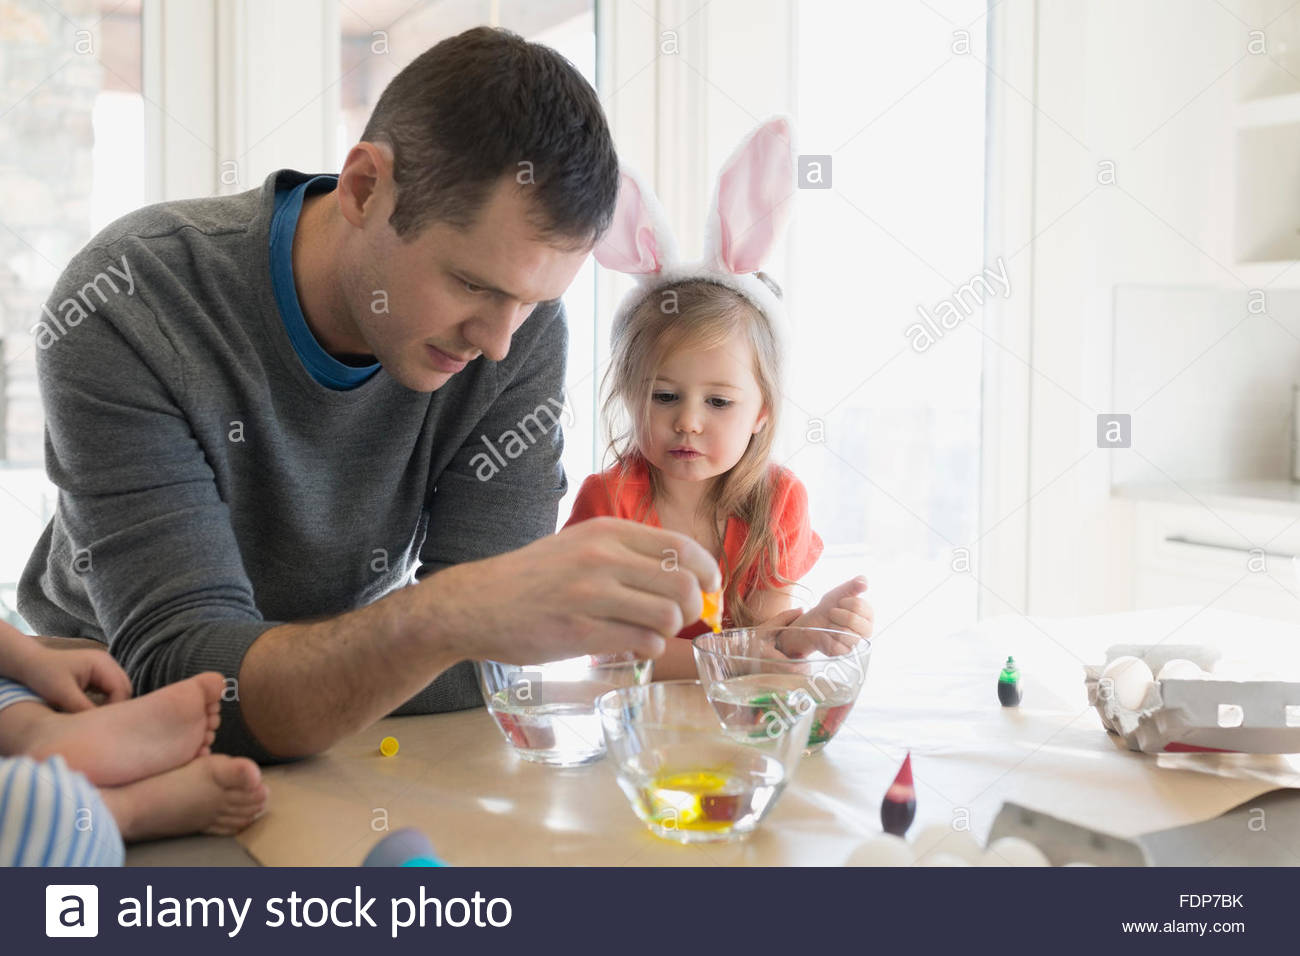 Father and daughter preparing food coloring Easter eggs - Stock Image